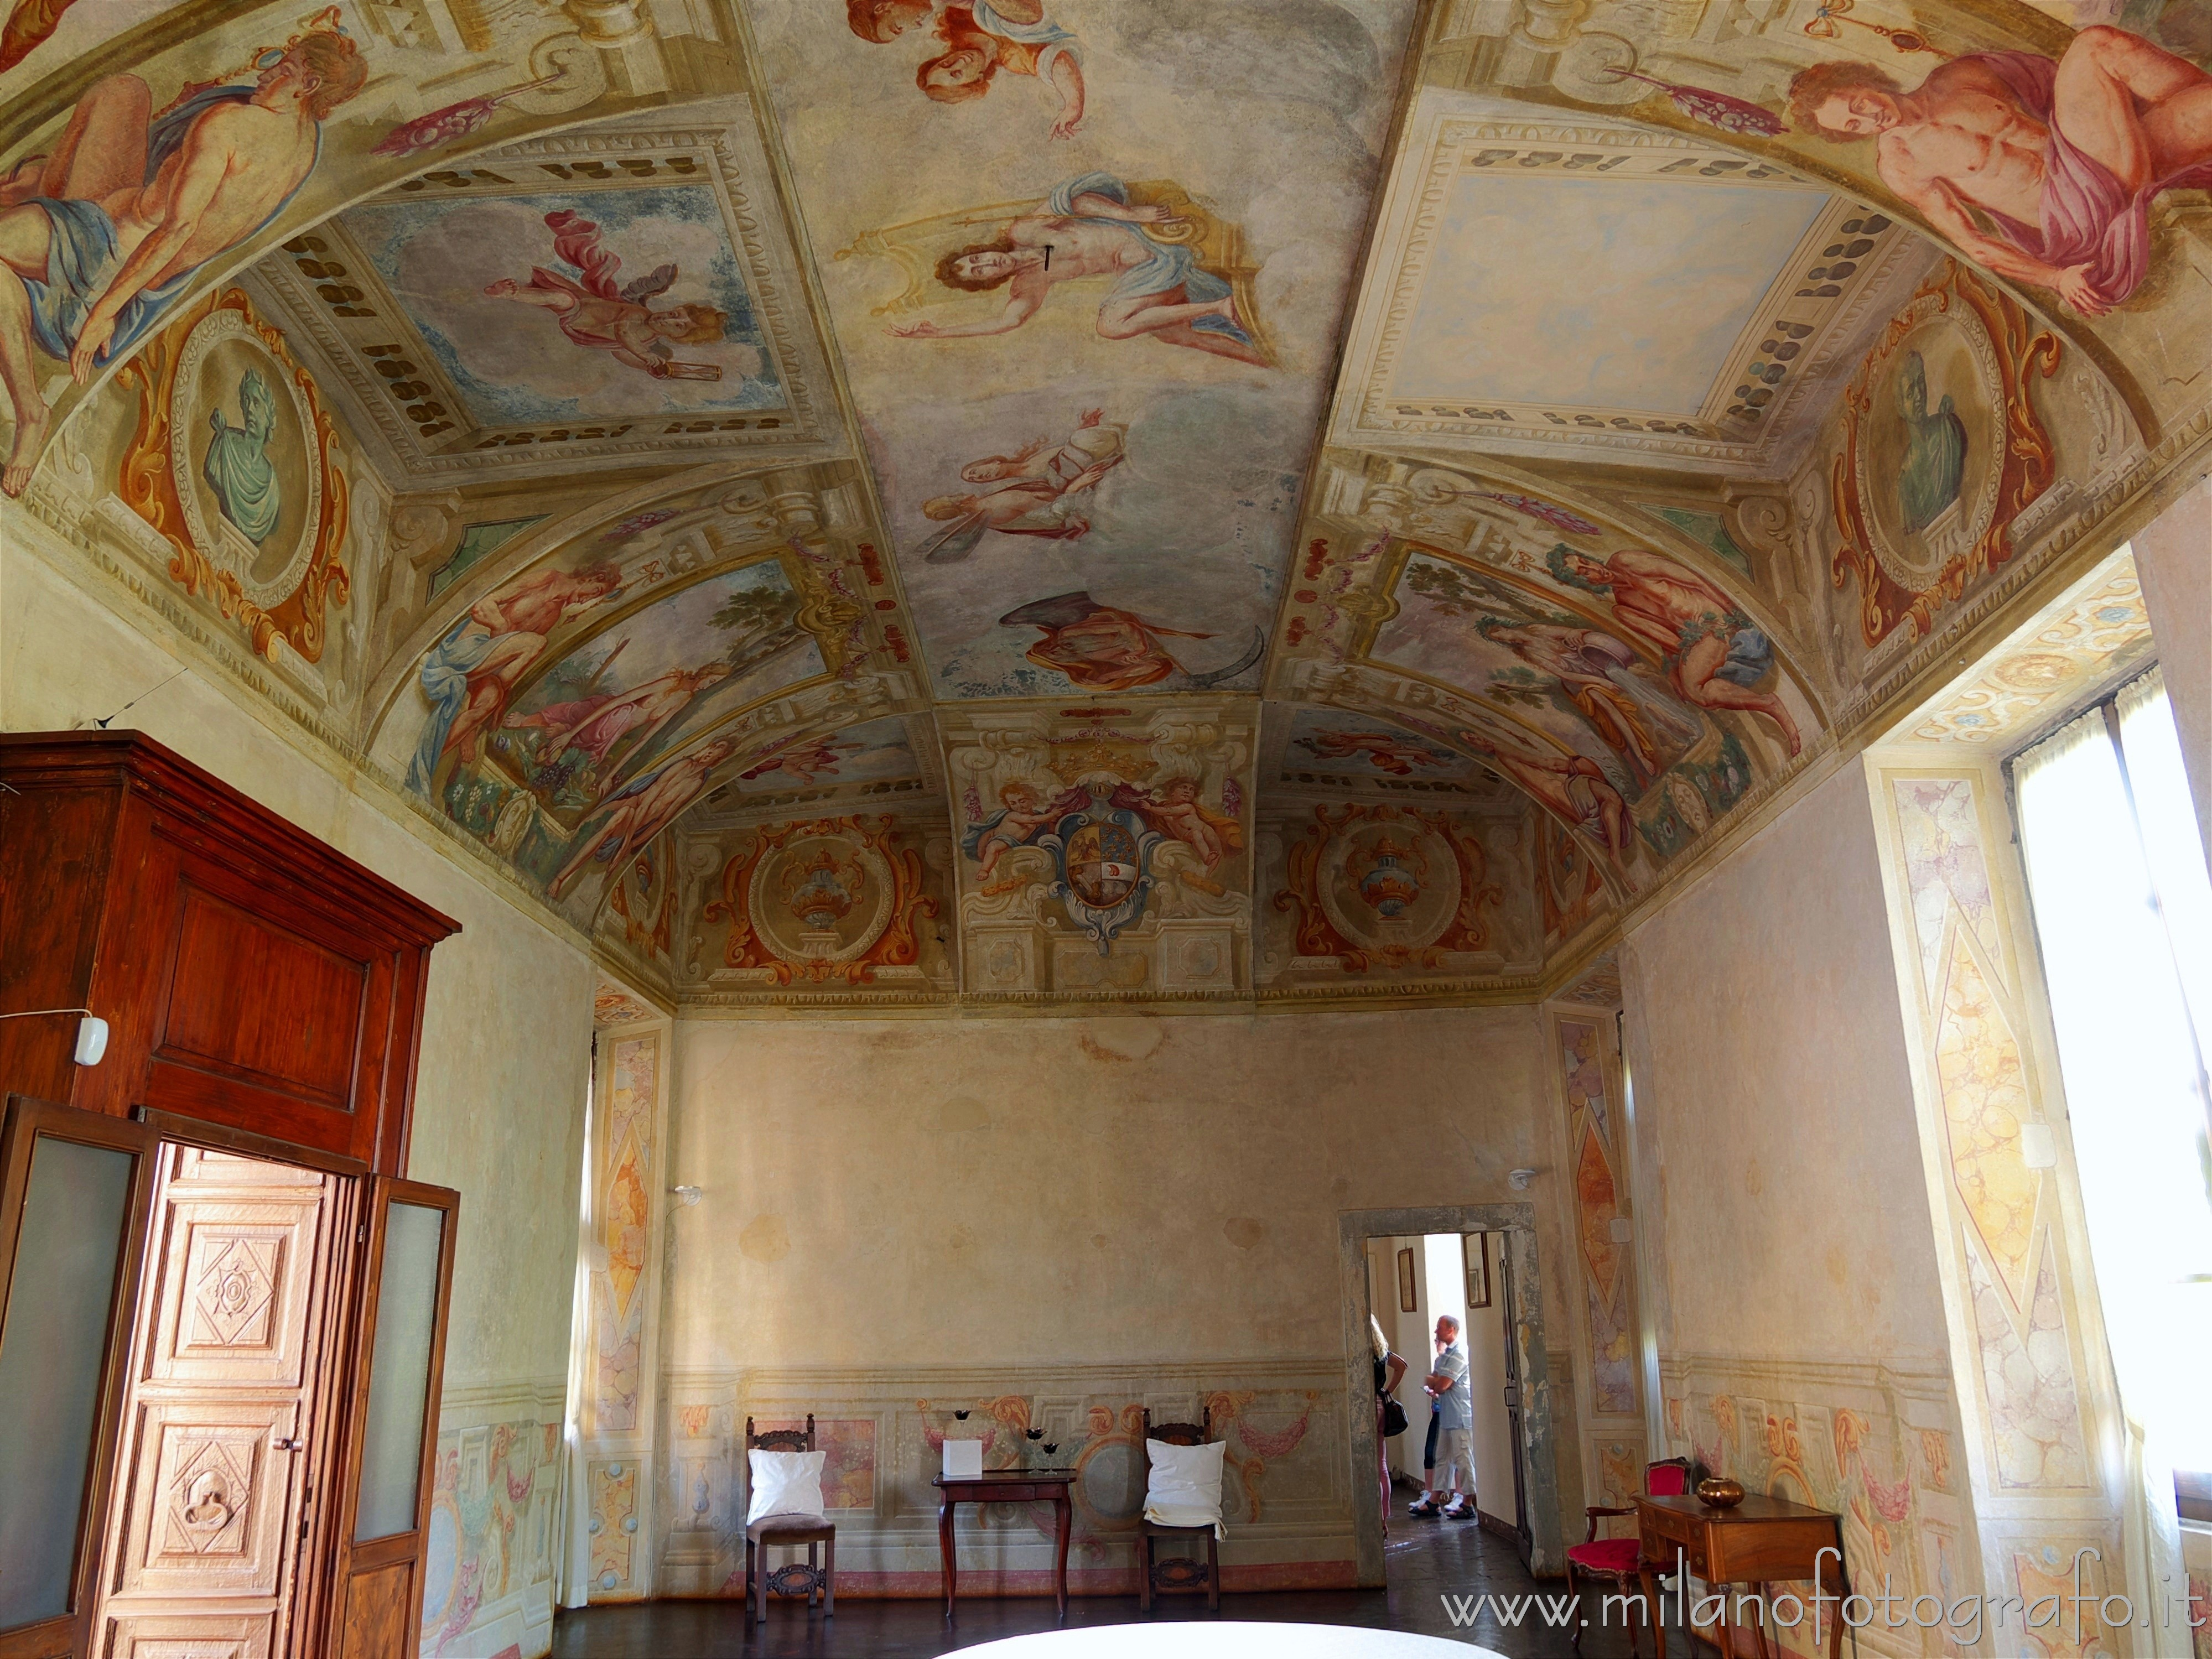 Cavernago (Bergamo, Italy): Frescoed hall in the Castle of Cavernago - Cavernago (Bergamo, Italy)